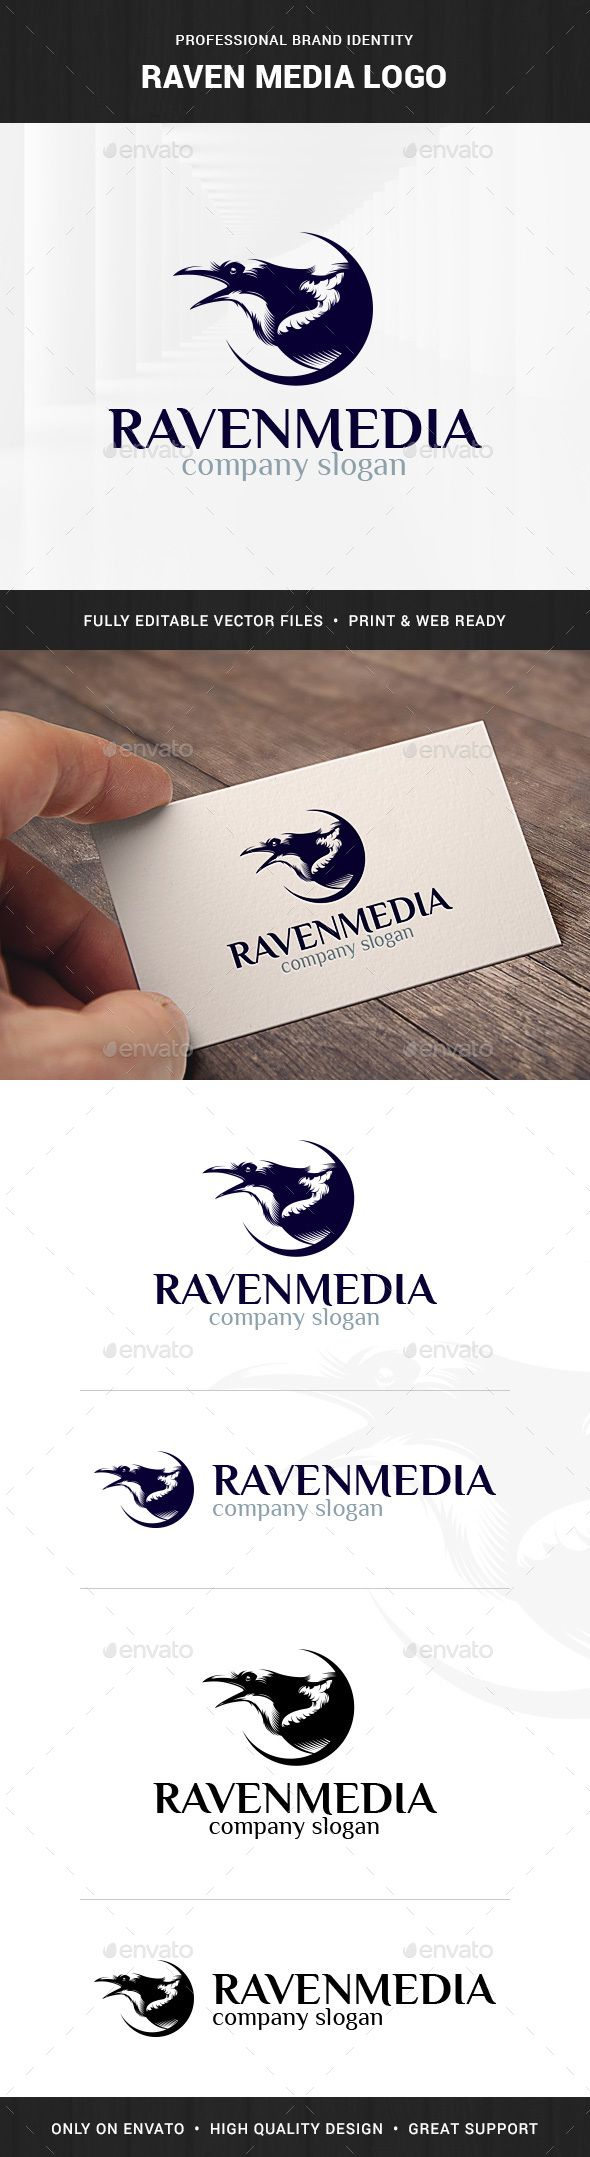 Raven Media Logo Template - Animals Logo Templates Download here : http://graphicriver.net/item/raven-media-logo-template/15741952?s_rank=162&ref=Al-fatih